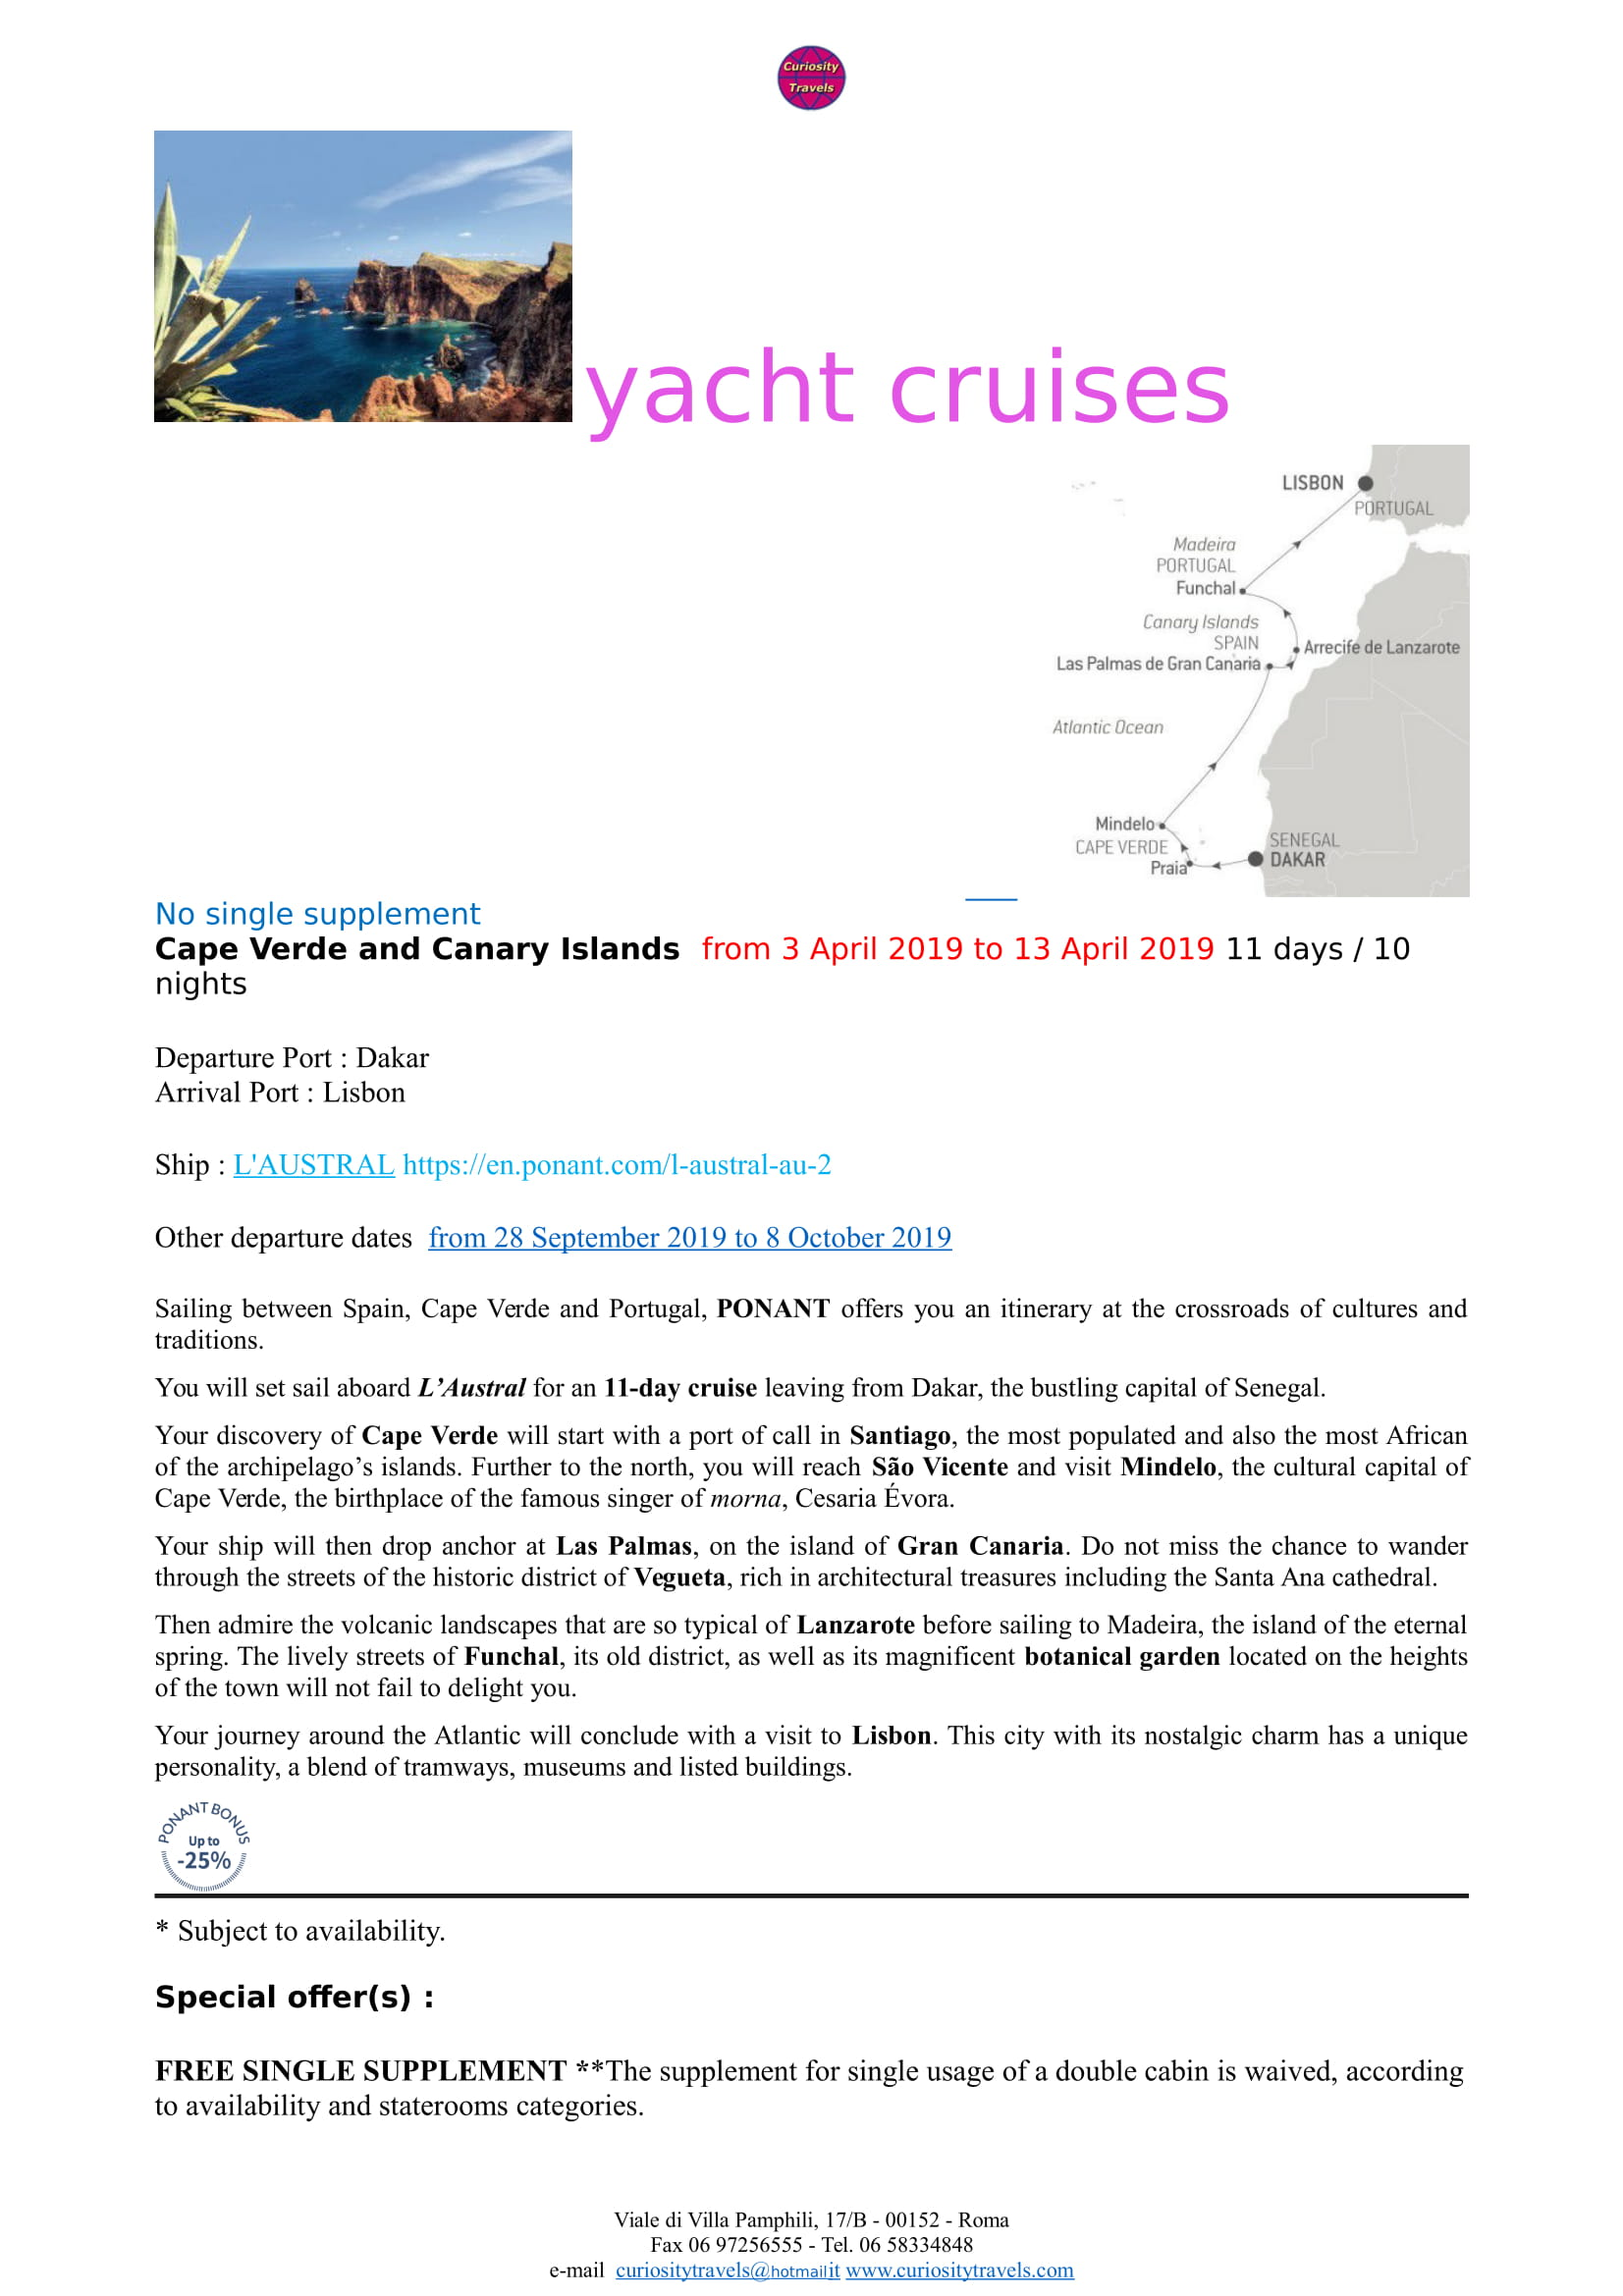 Curiosity Travels - yacht cruises